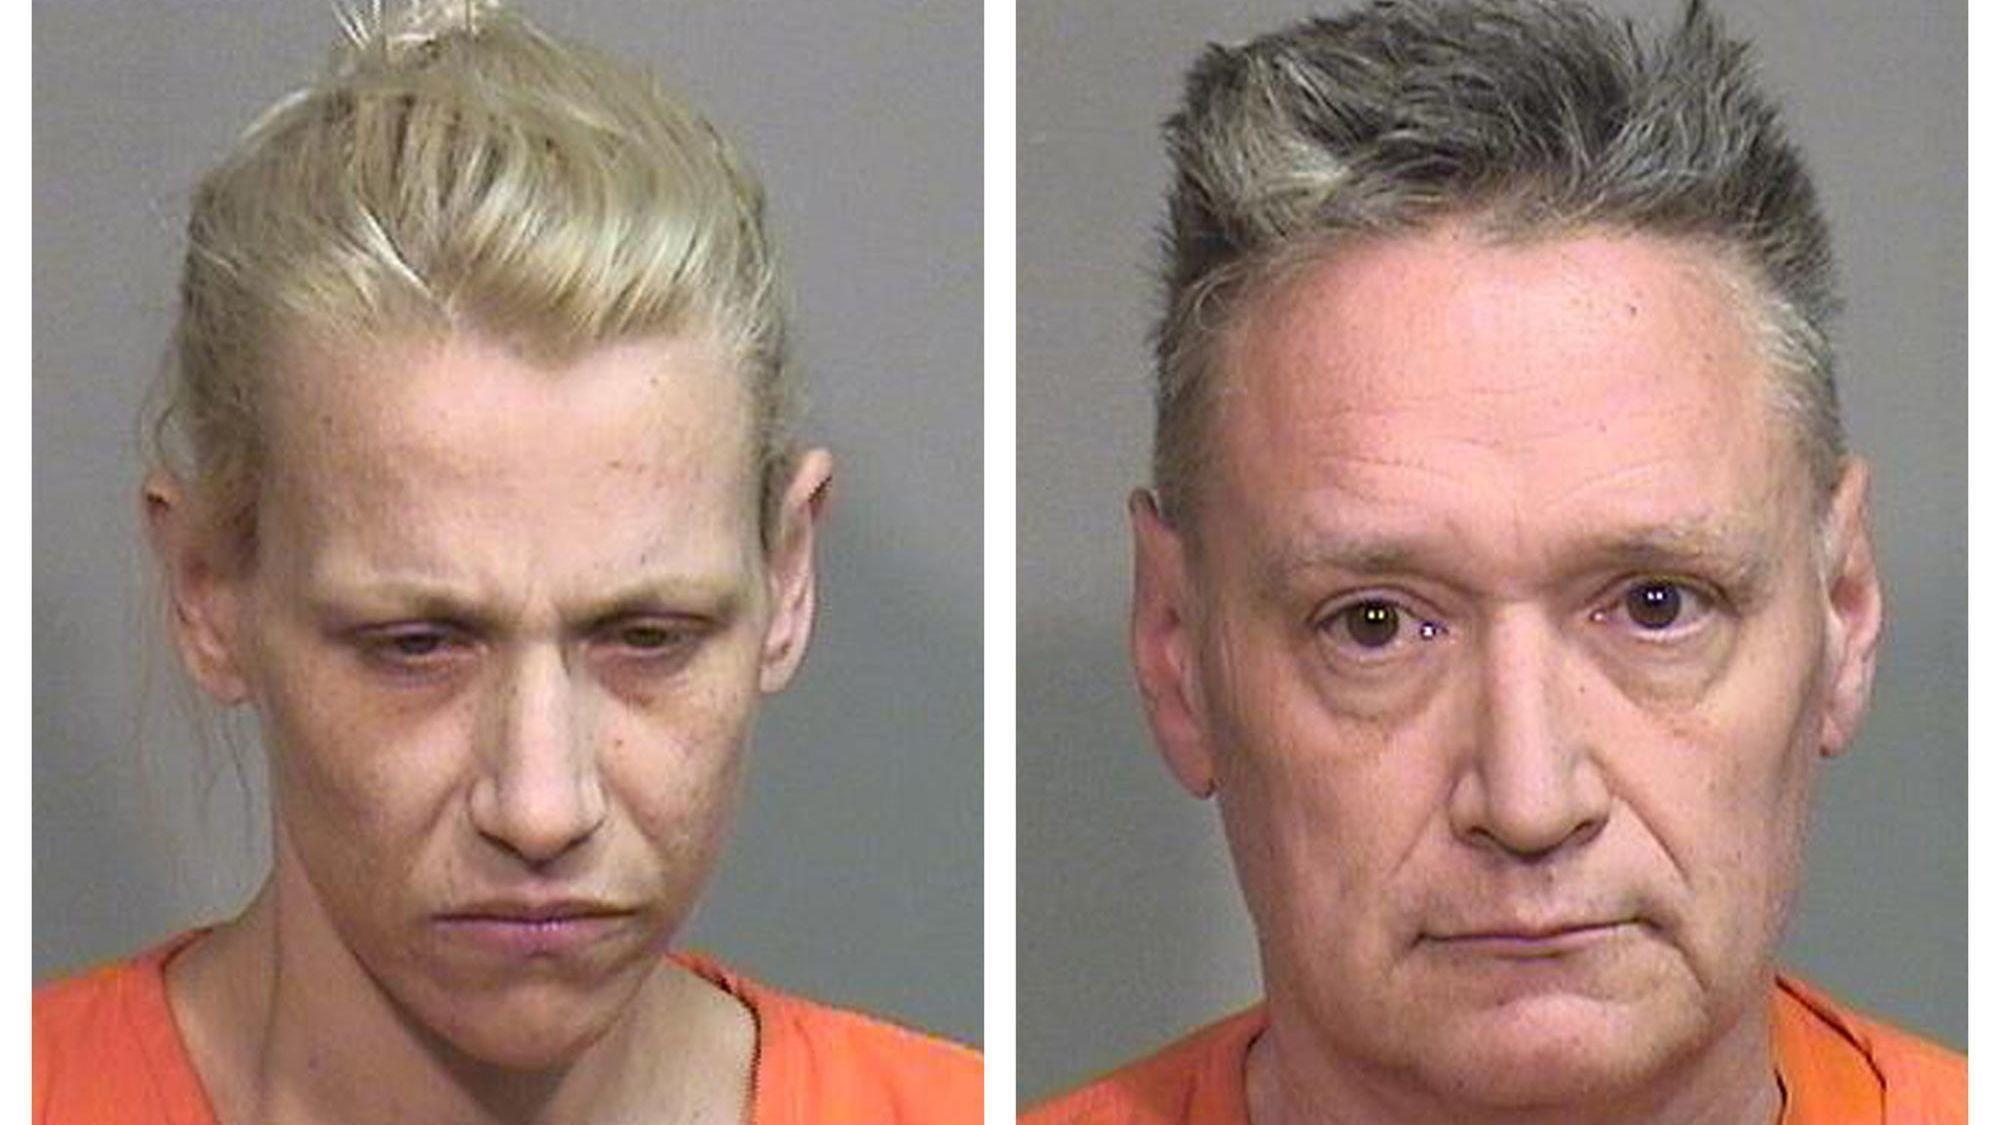 Bail set at $5 million for parents of Crystal Lake boy Andrew 'AJ' Freund